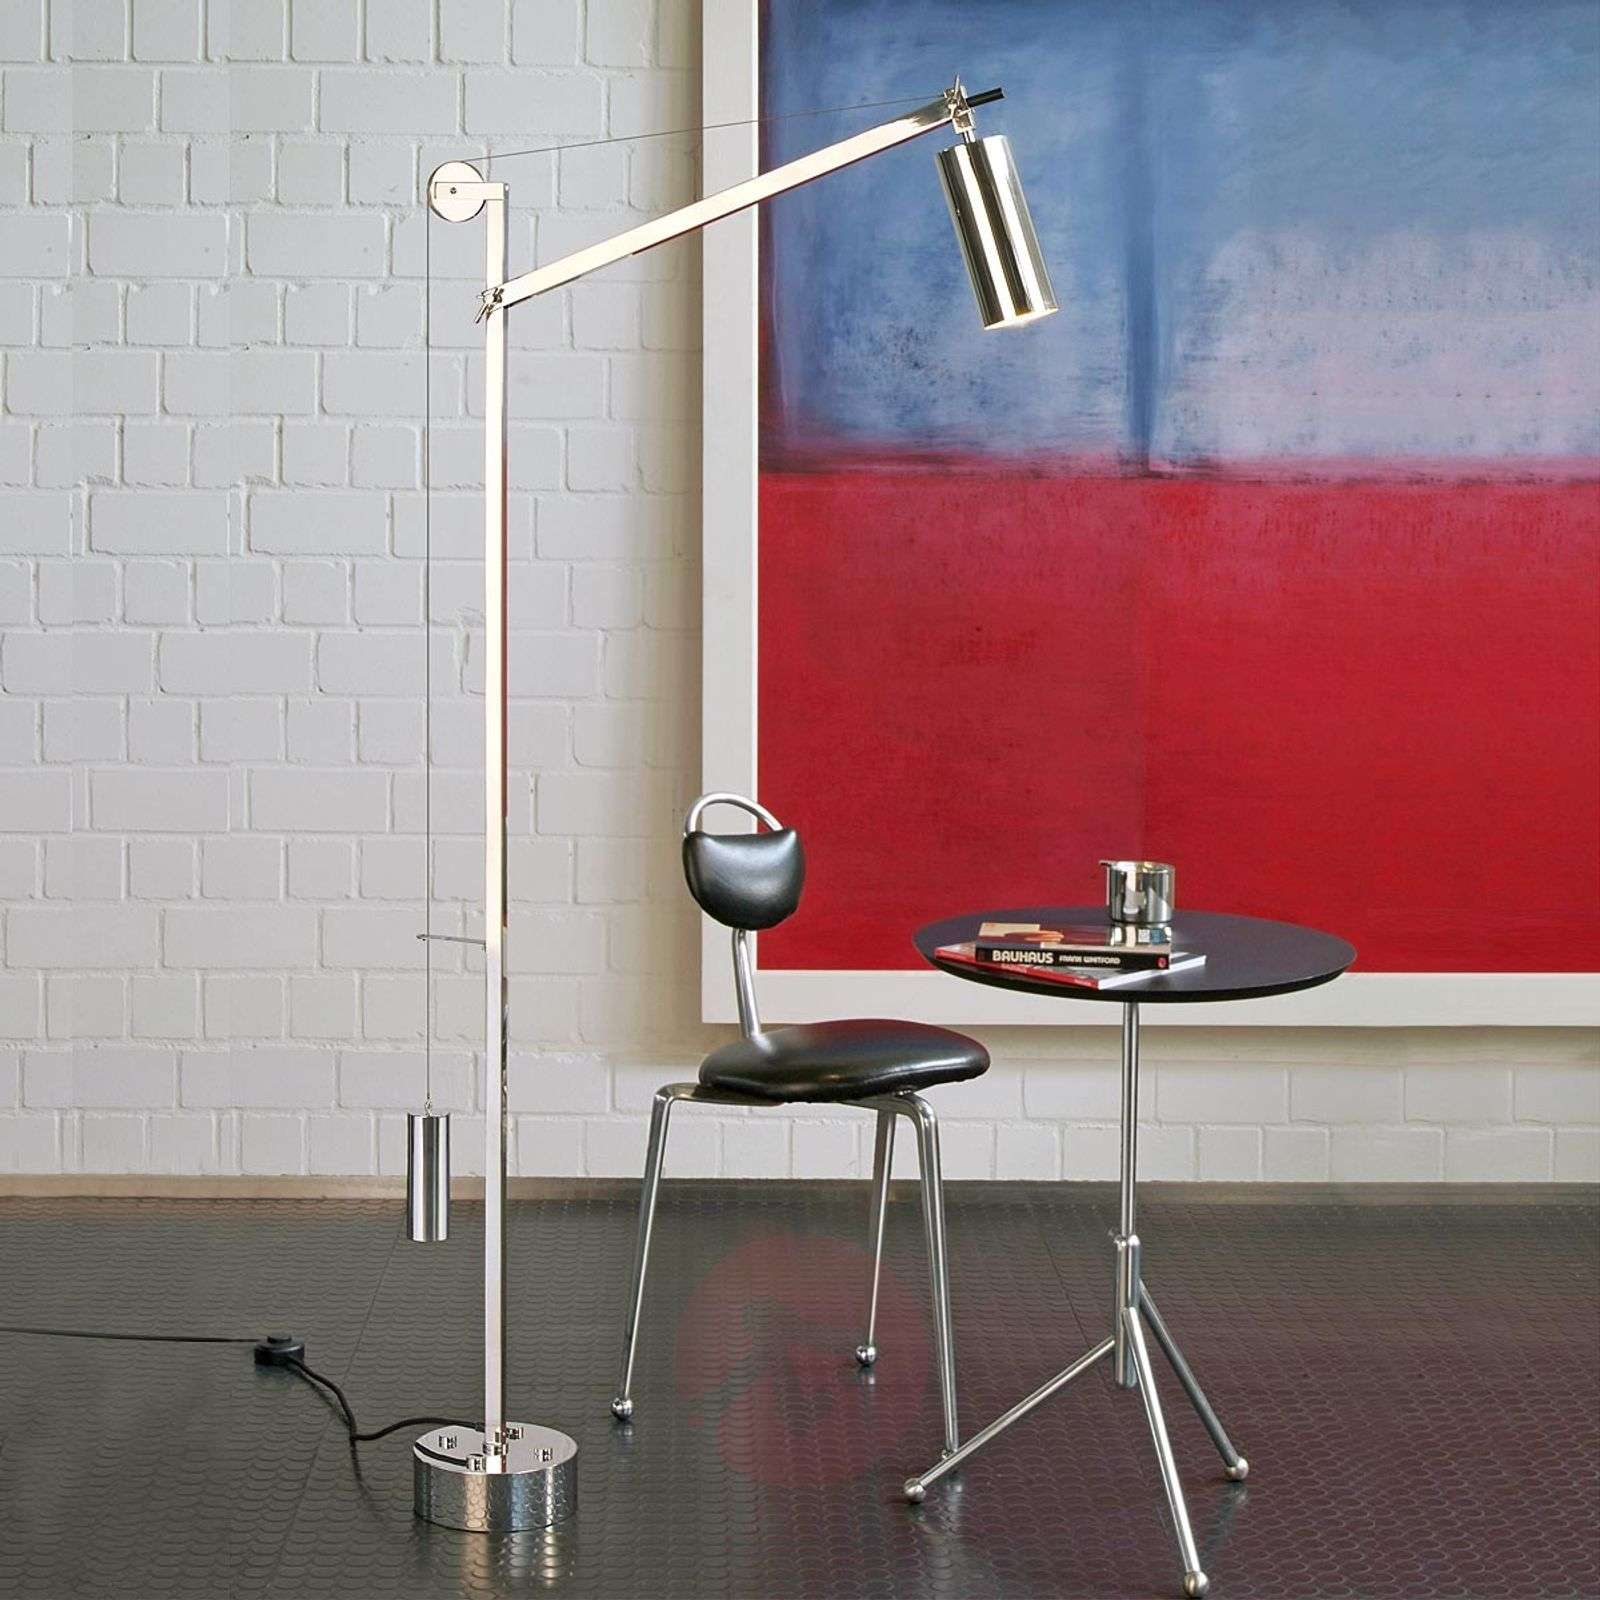 Floor lamp in the bauhaus style with counterweight lights floor lamp in the bauhaus style with counterweight 9030016 01 aloadofball